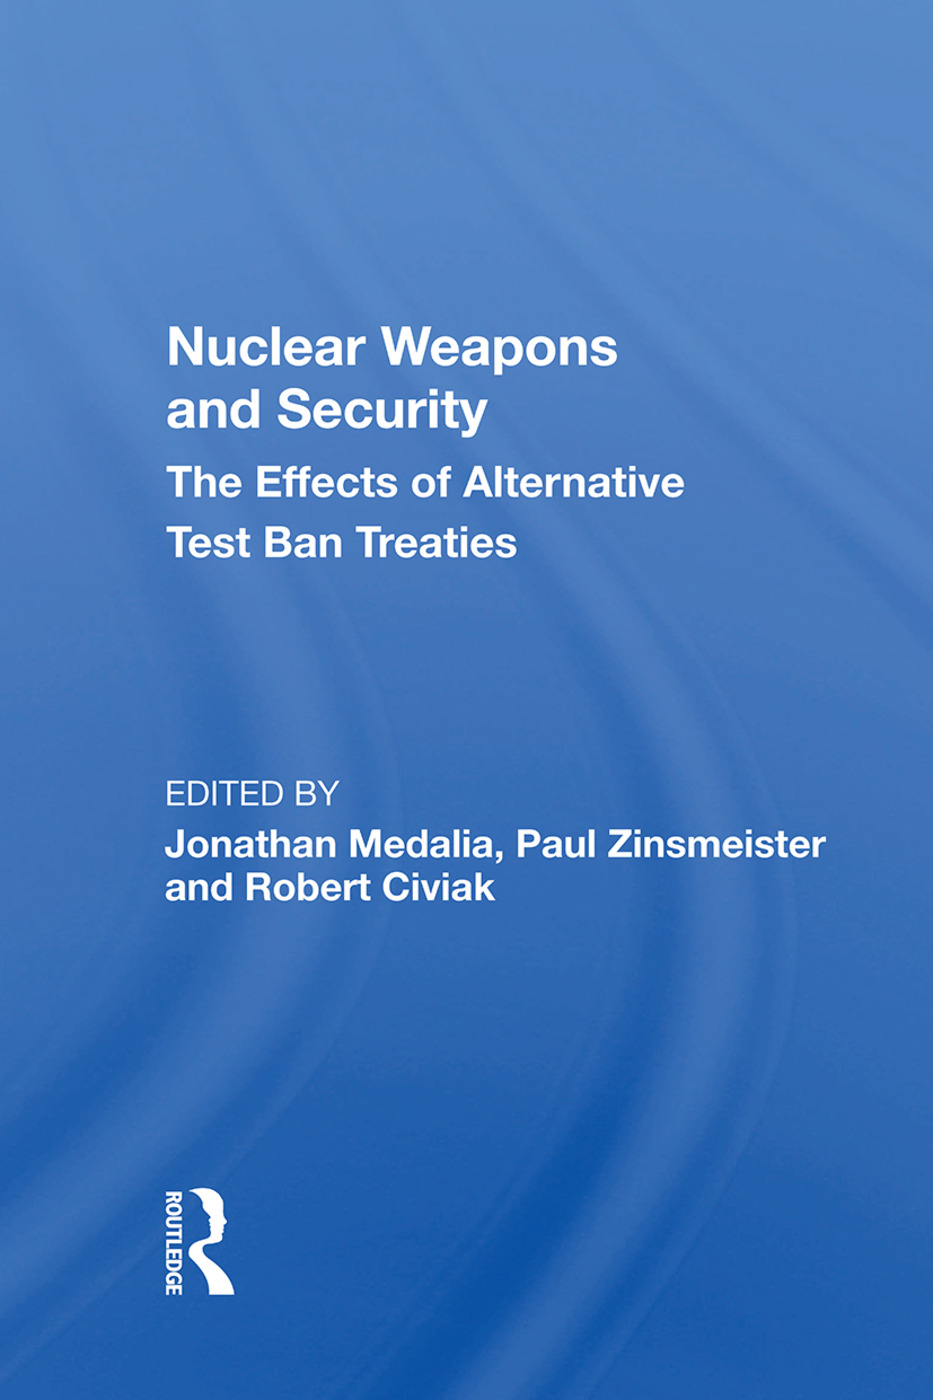 Effects of More Restrictive Test Bans on Nuclear Effects Testing